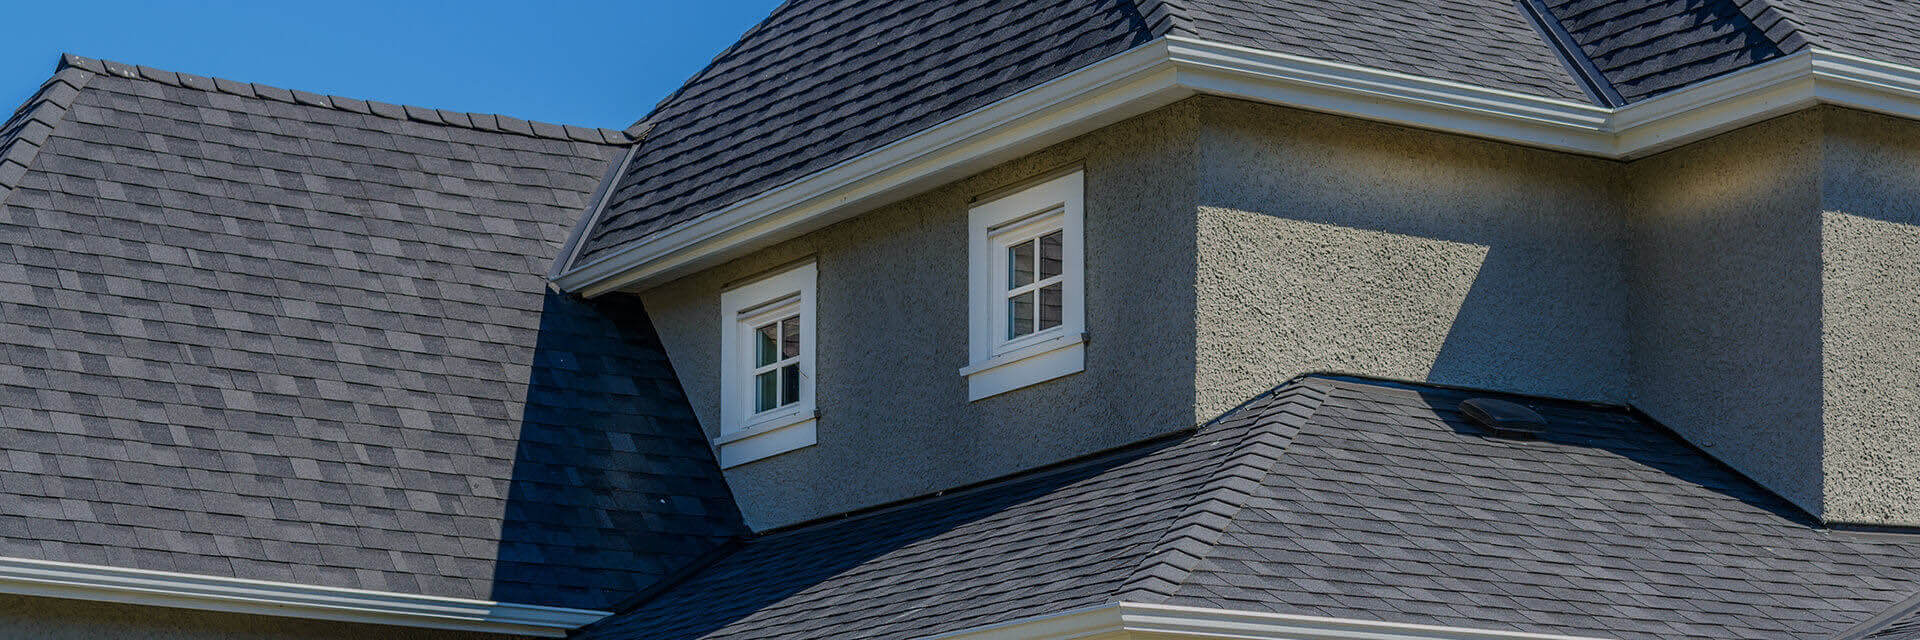 Photo of a gray asphalt shingle roof on a gray stucco house